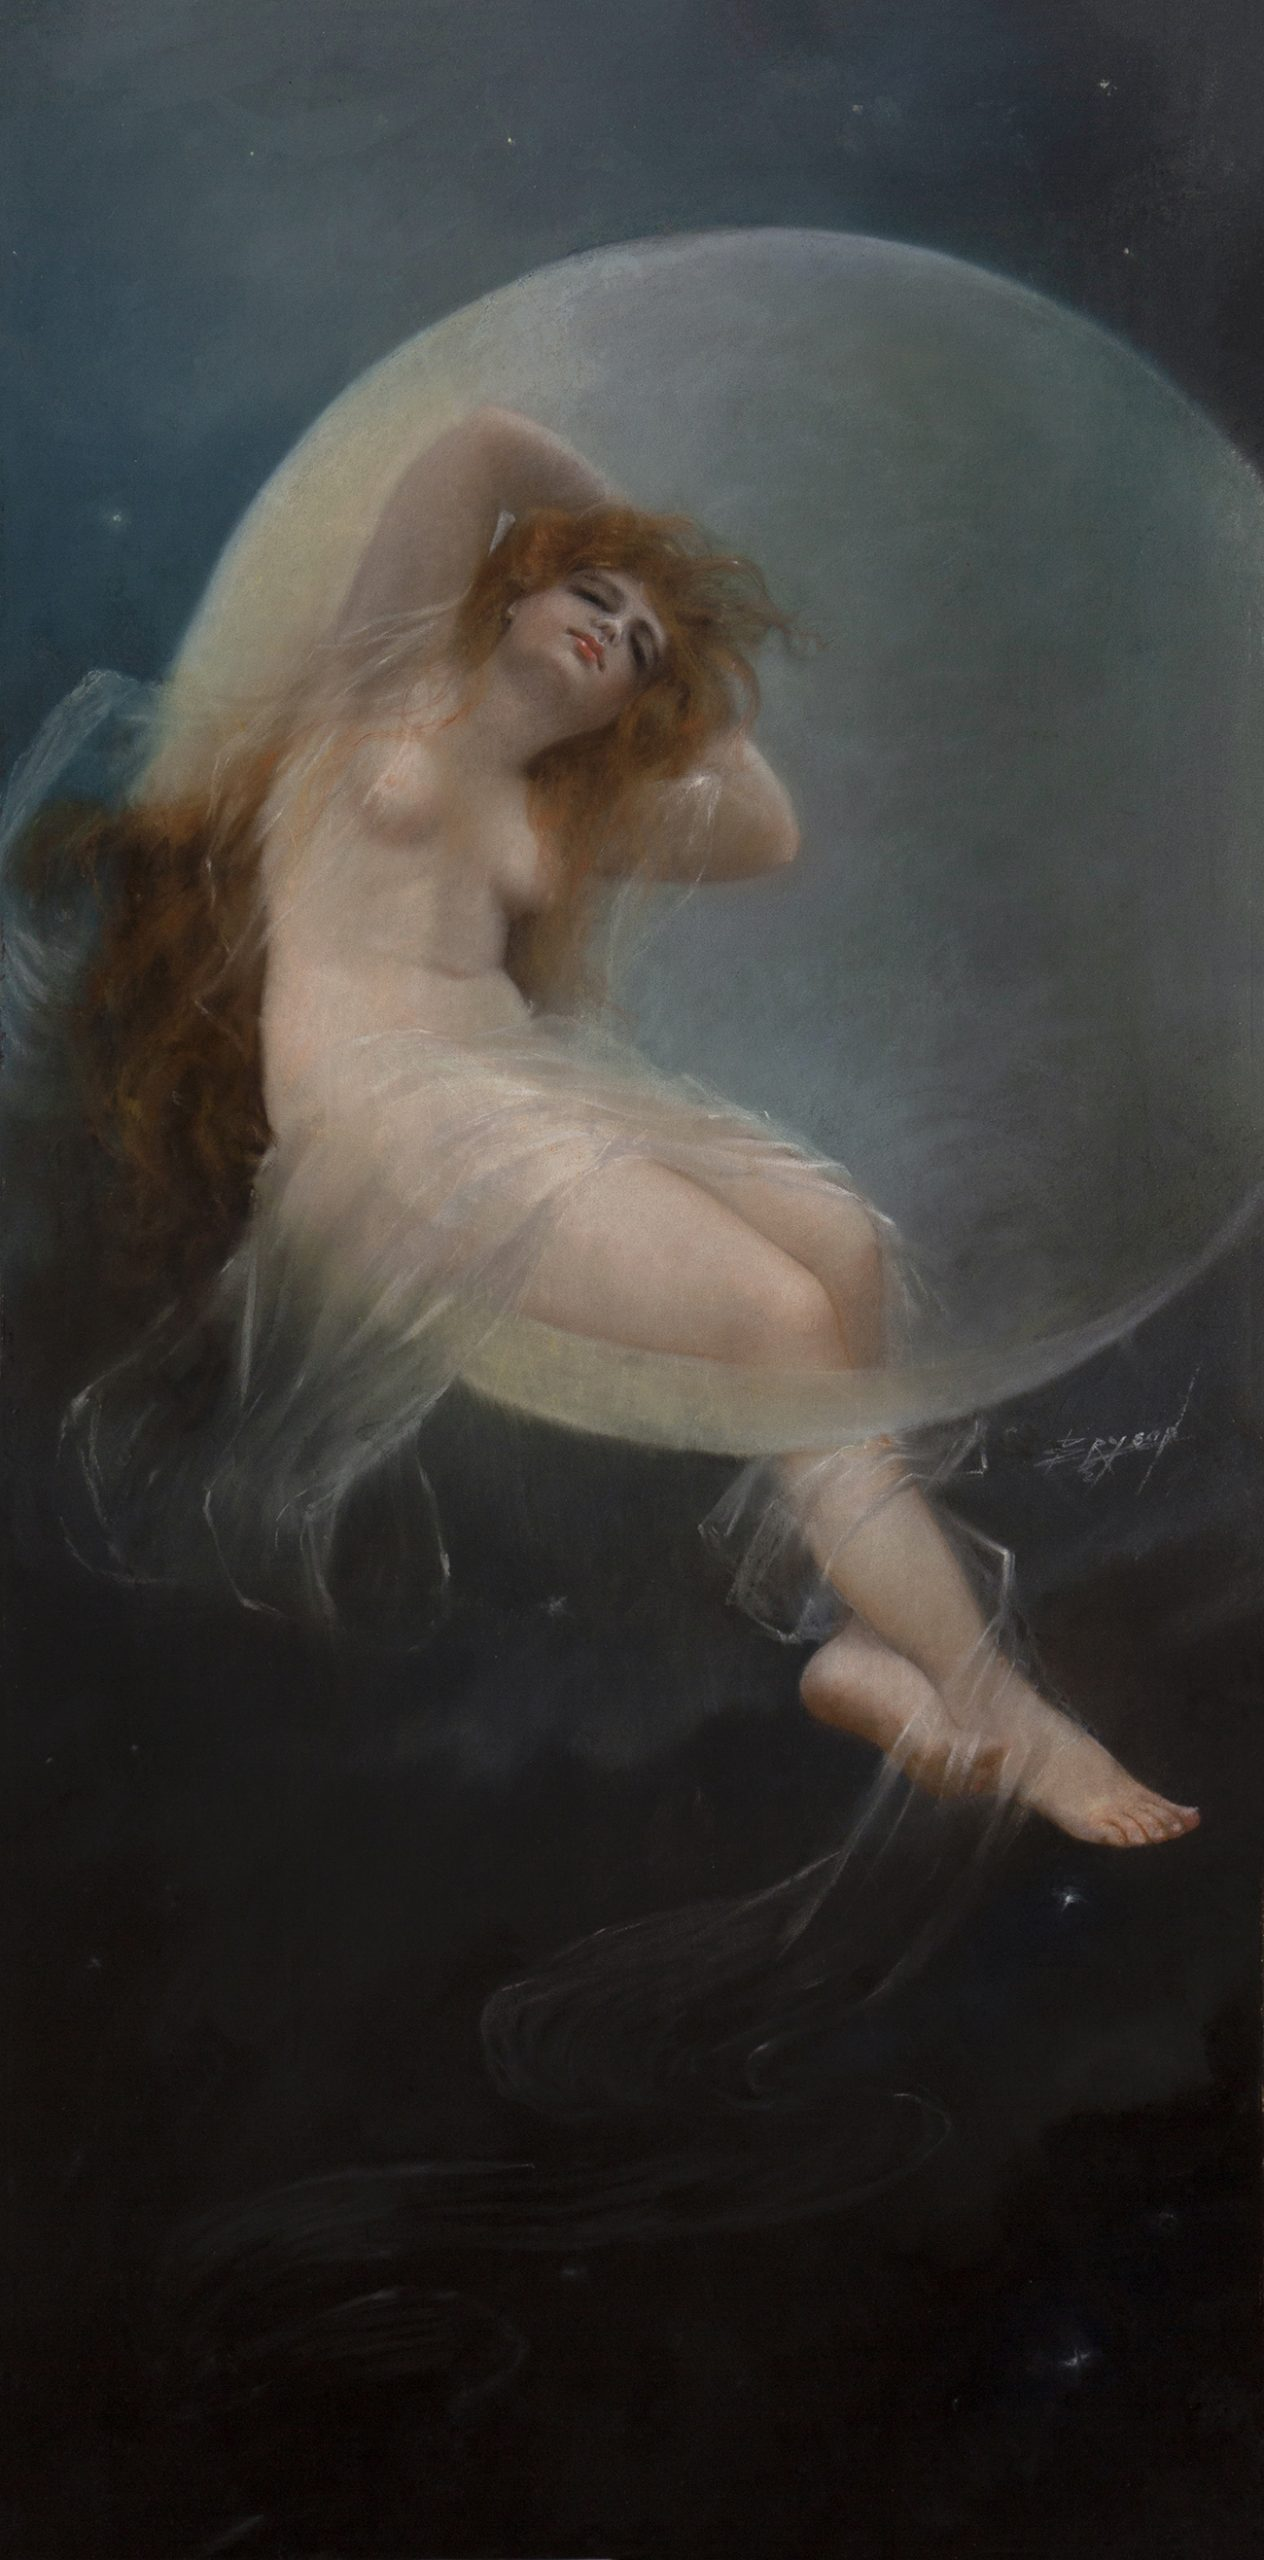 Nude Art Nouveau goddess seated on the edge of the moon